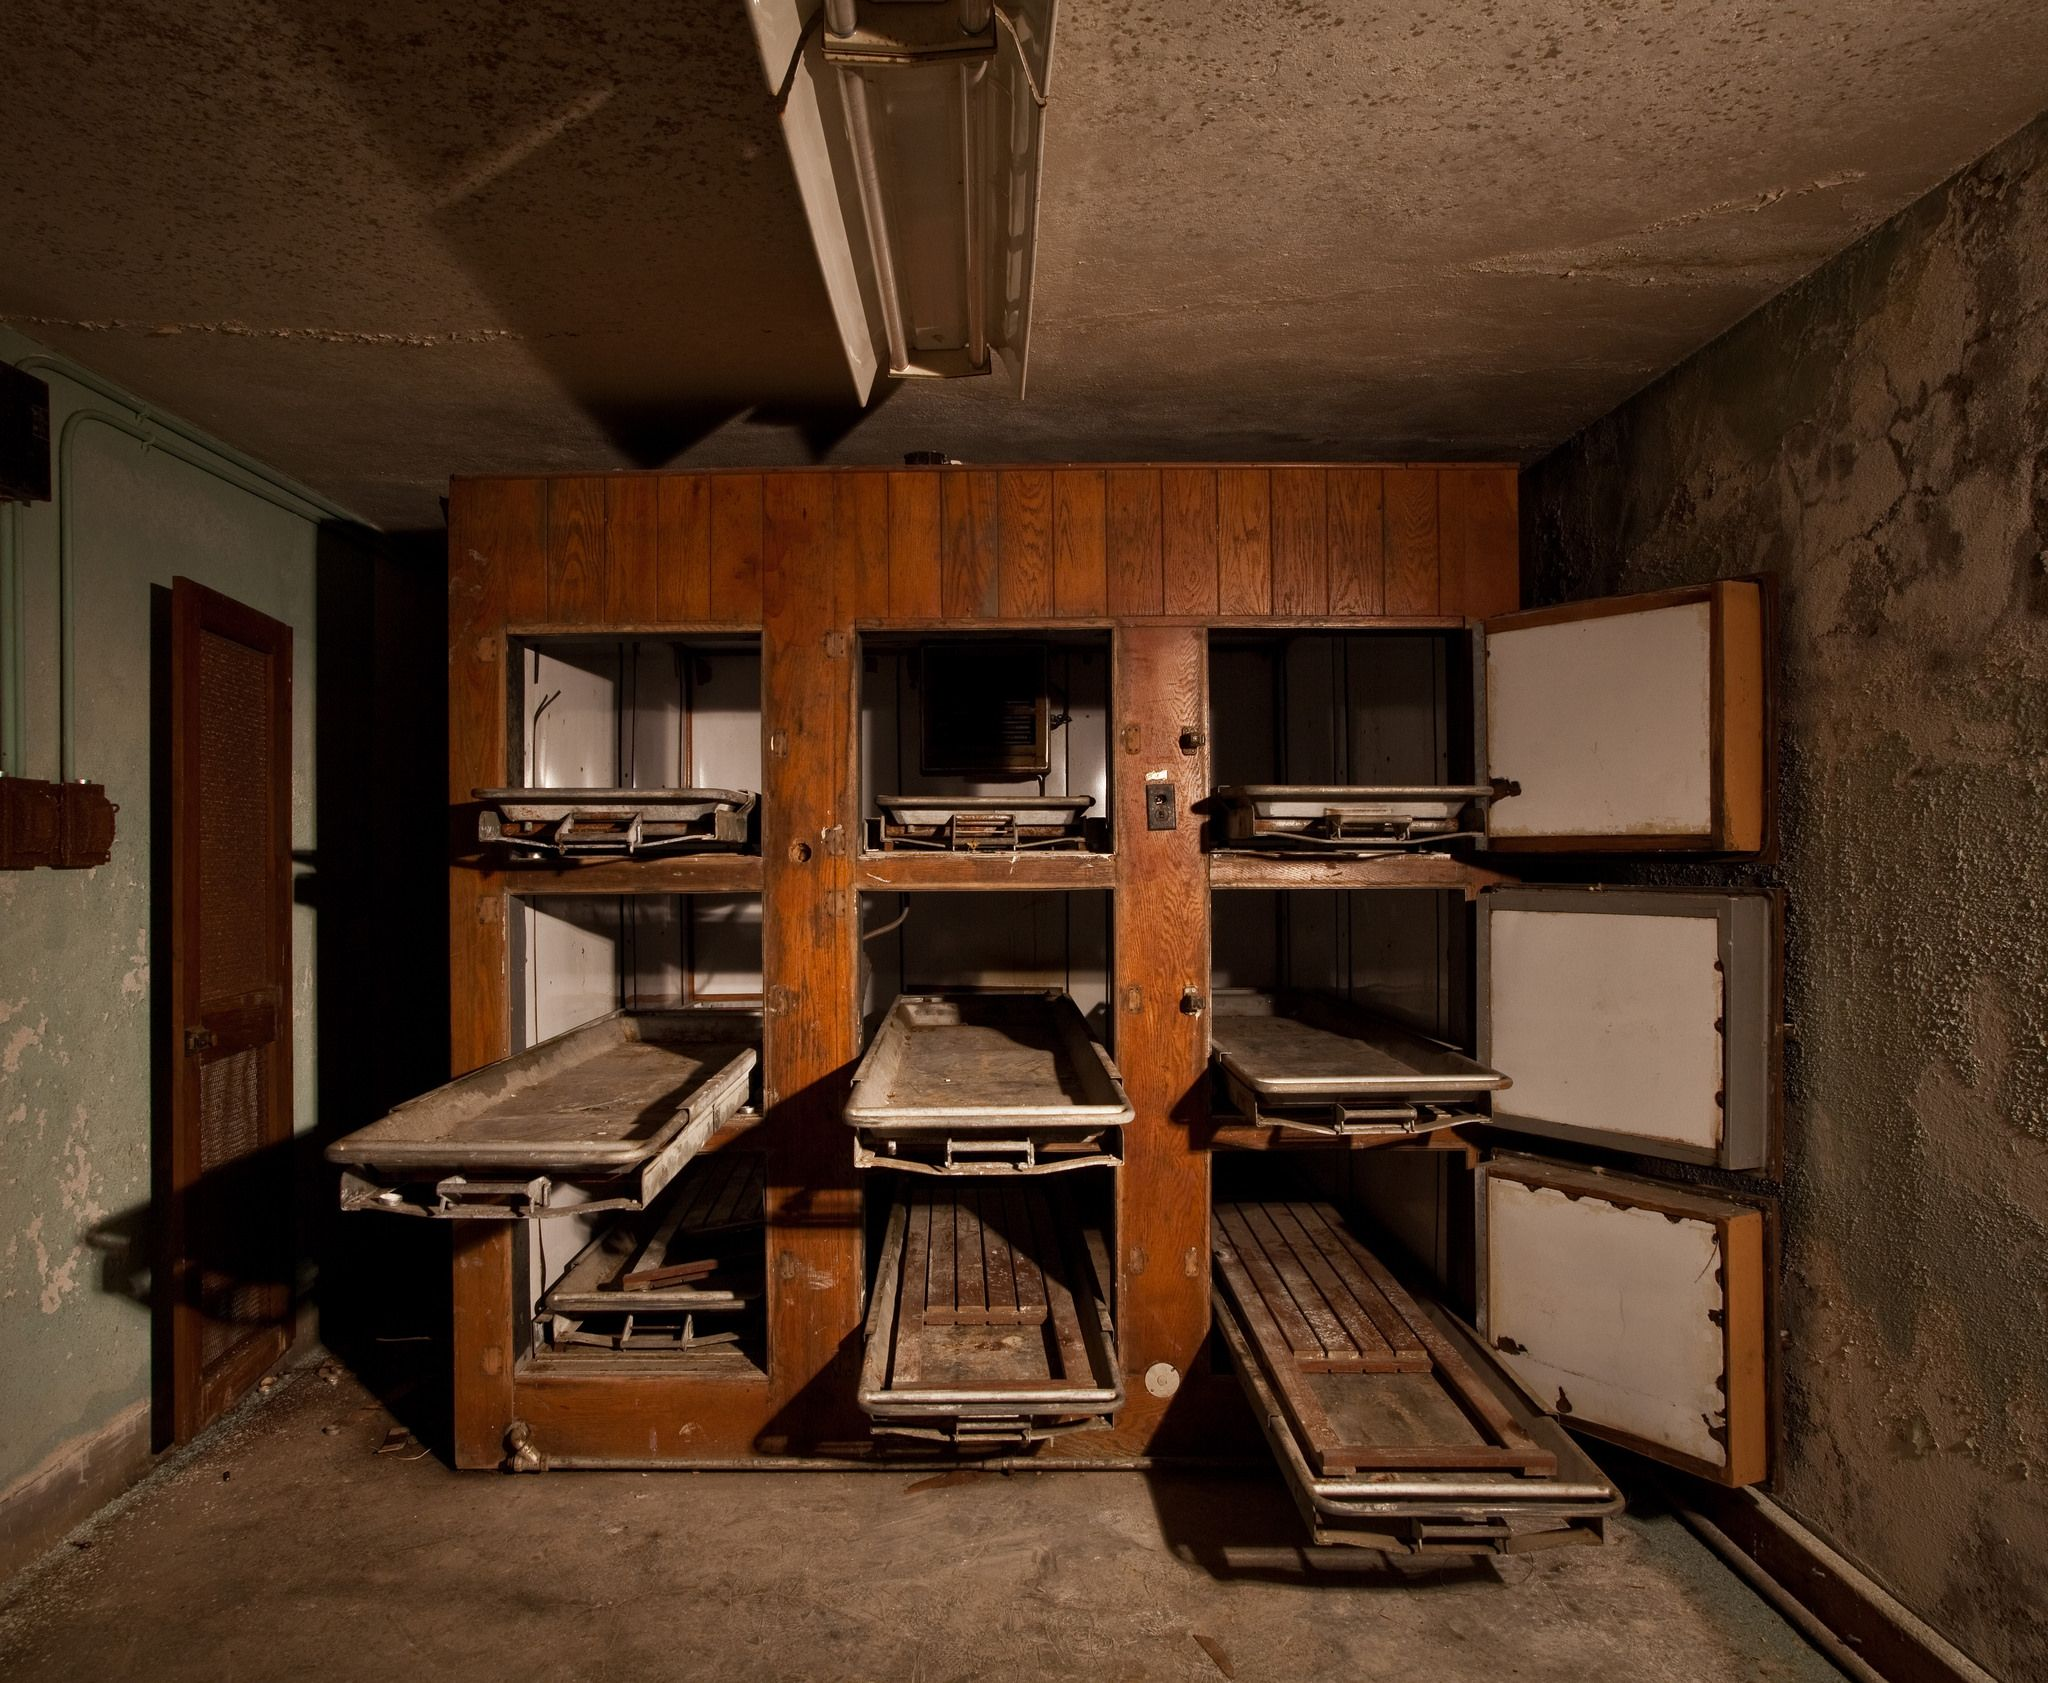 Harlem Valley Morgue | Fascinating places... | Pinterest